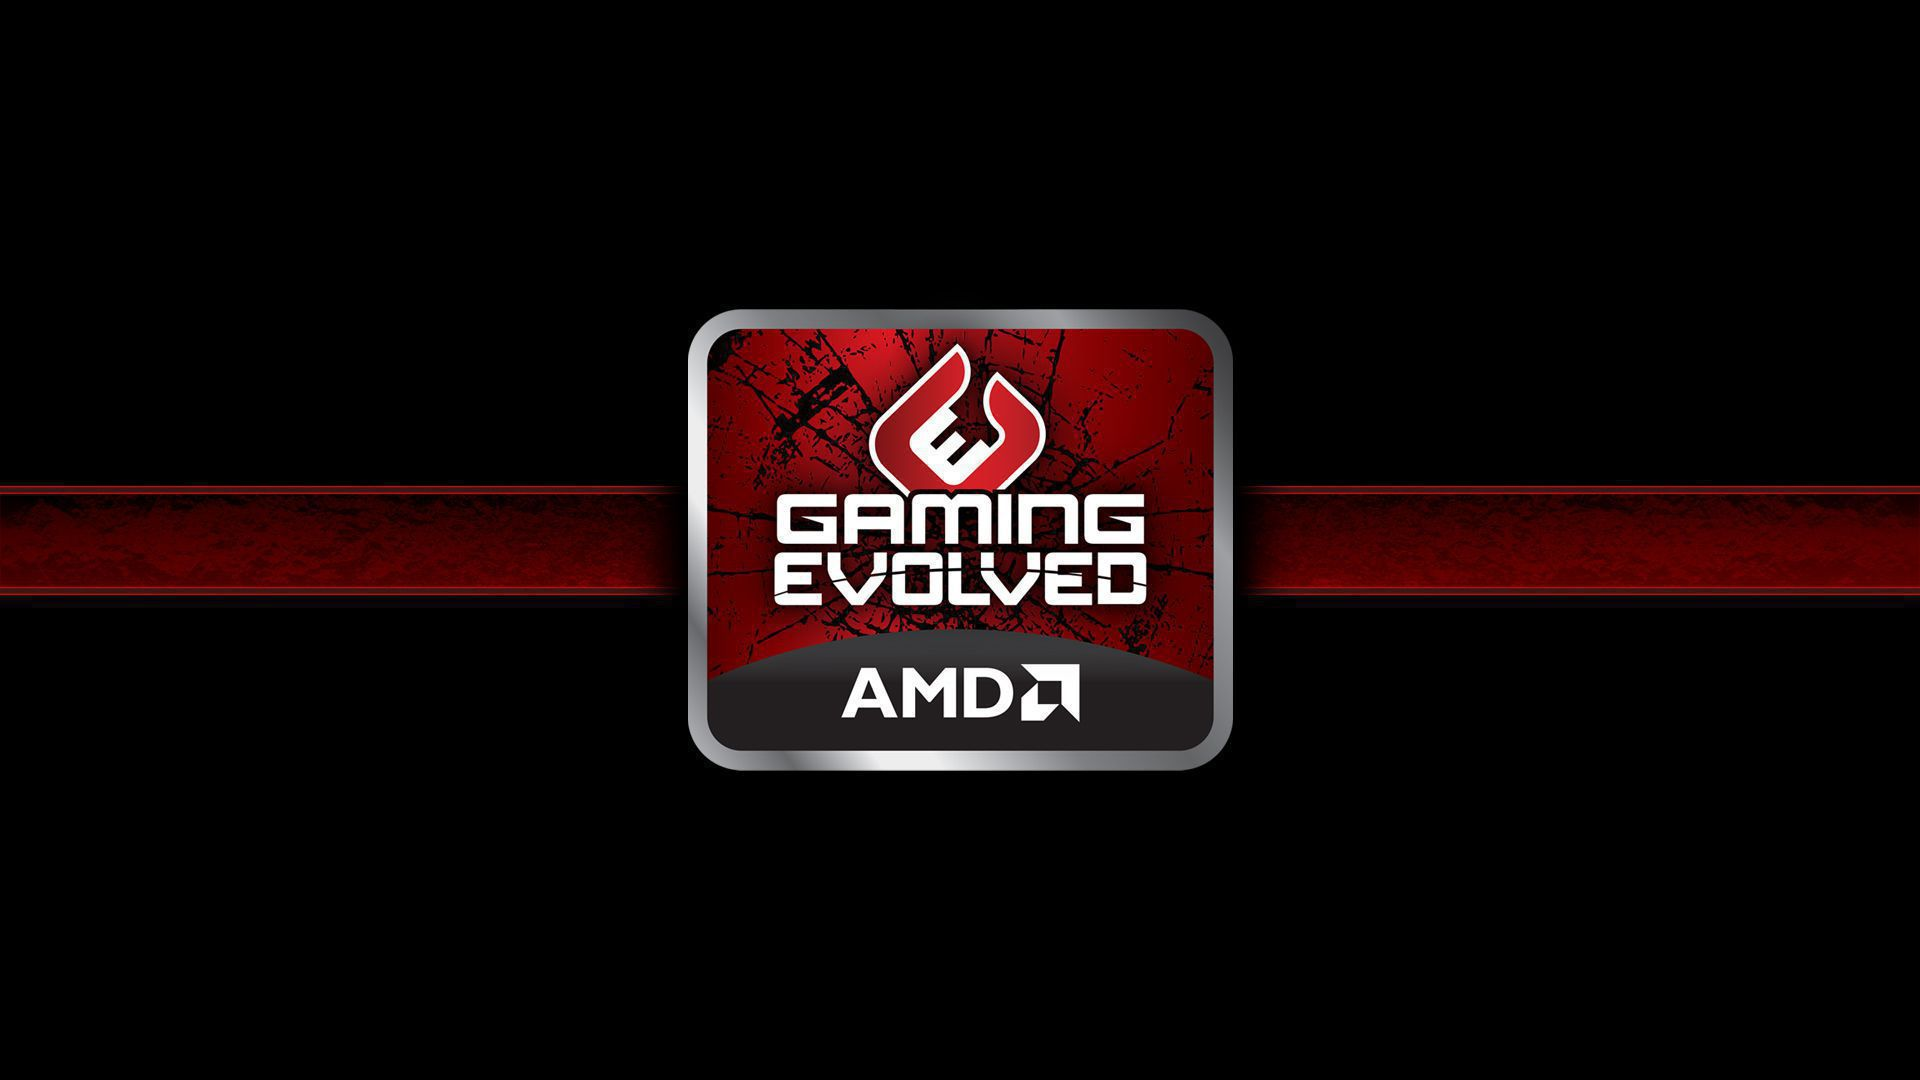 1920x1080 AMD Radeon Wallpapers WallpaperSafari Source Amd Gaming Evolved Backgrounds